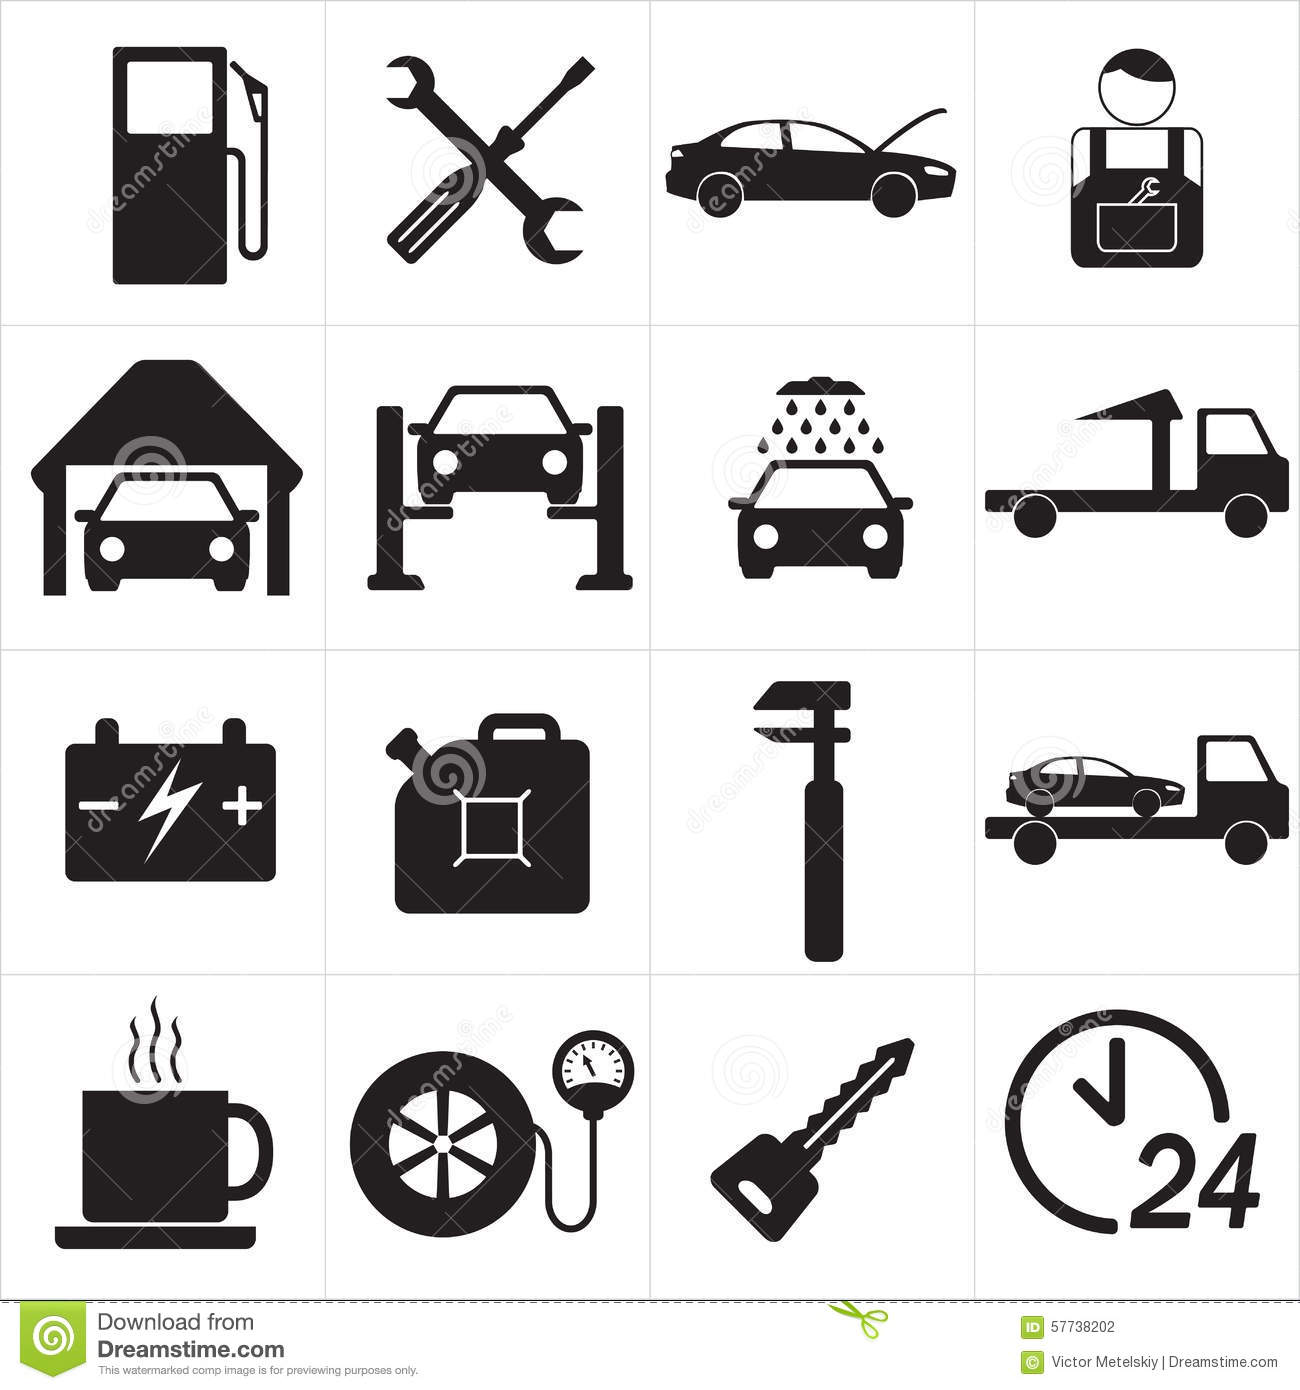 Summit Supply Now Stocks Loegering VTS Parts And Rubber Tracks besides ViewBrands in addition WIN Parts in addition Electric Trailer Brake Parts Diagram additionally Car Repair Icons Black. on tire breakdown